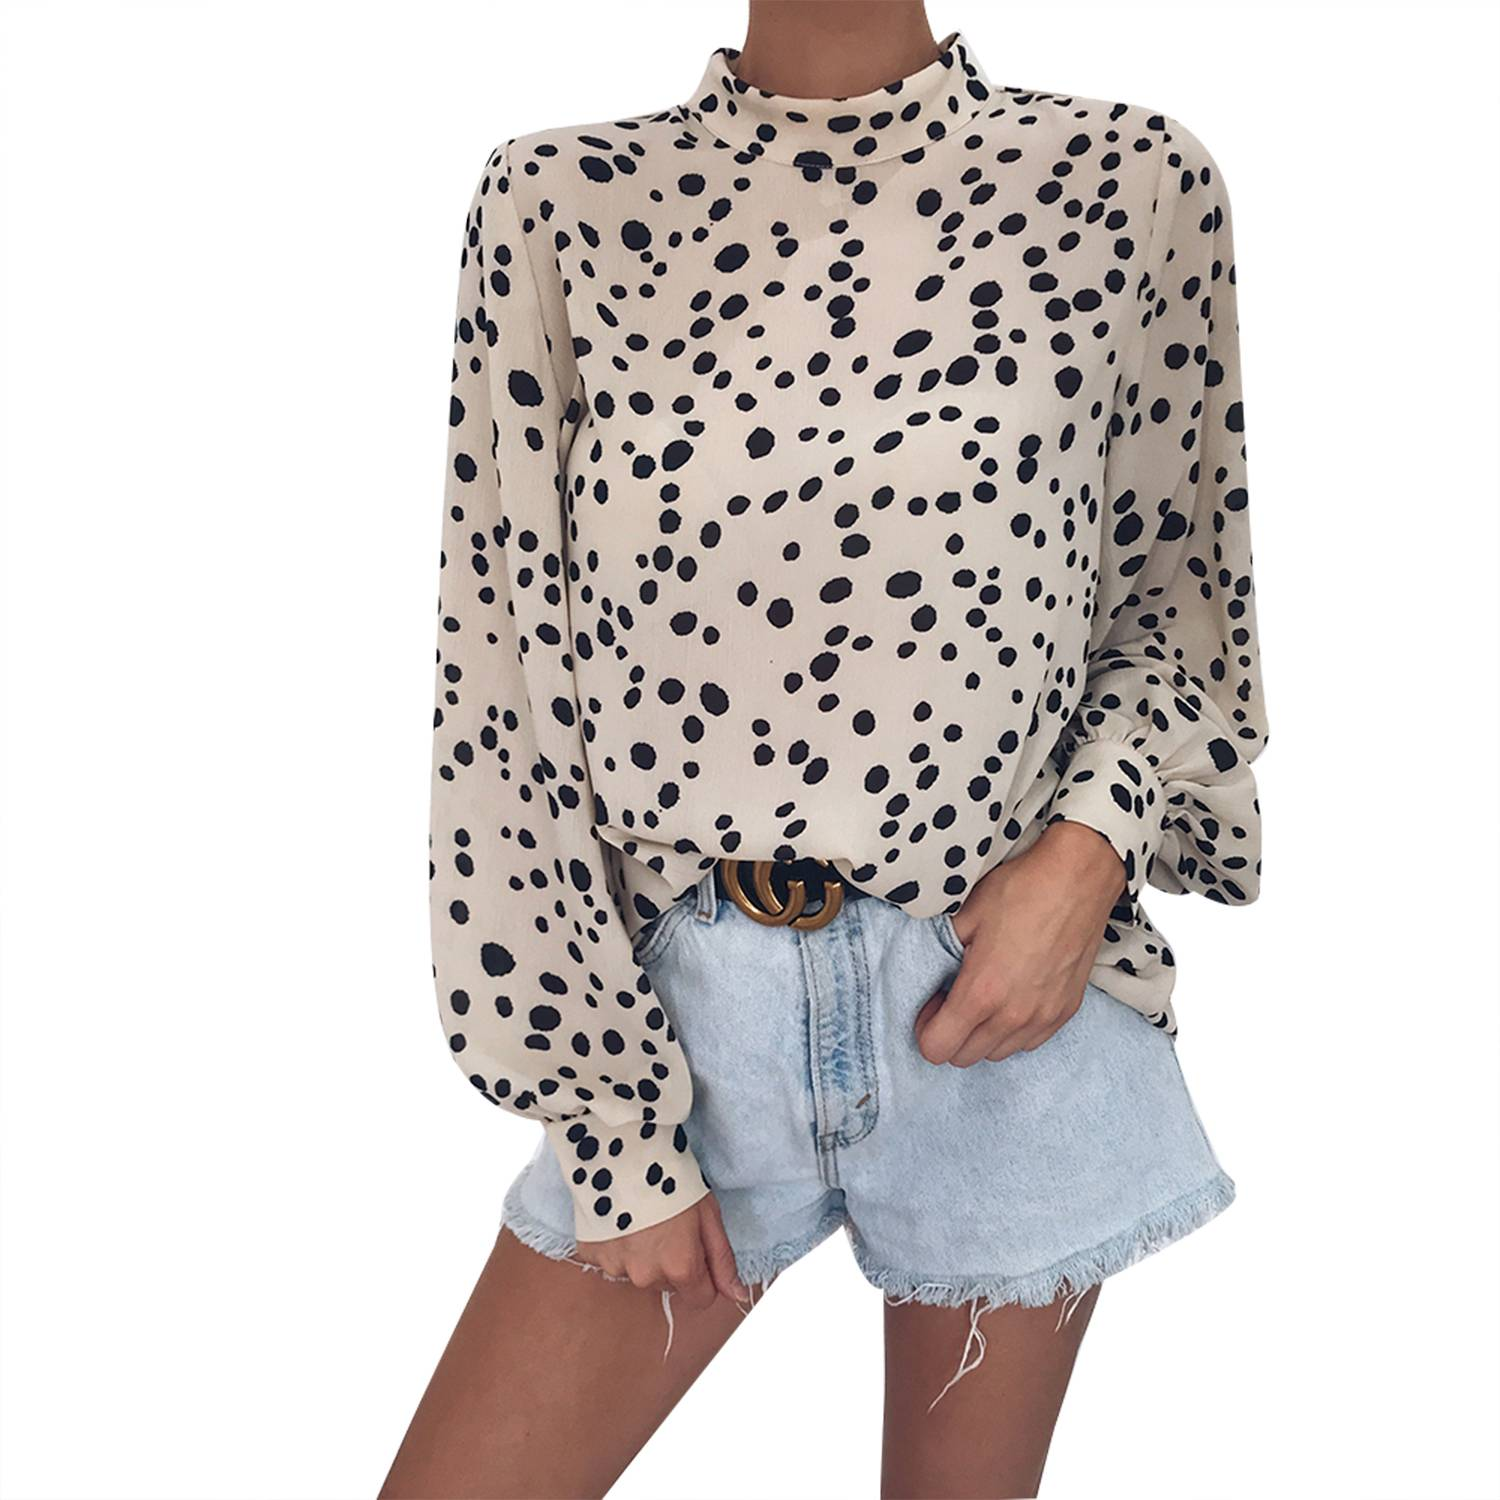 355a49eb247123 Details about Women Long Sleeve Polka Dot T Shirt Tops Summer Loose Casual  Vintage Blouse Tee